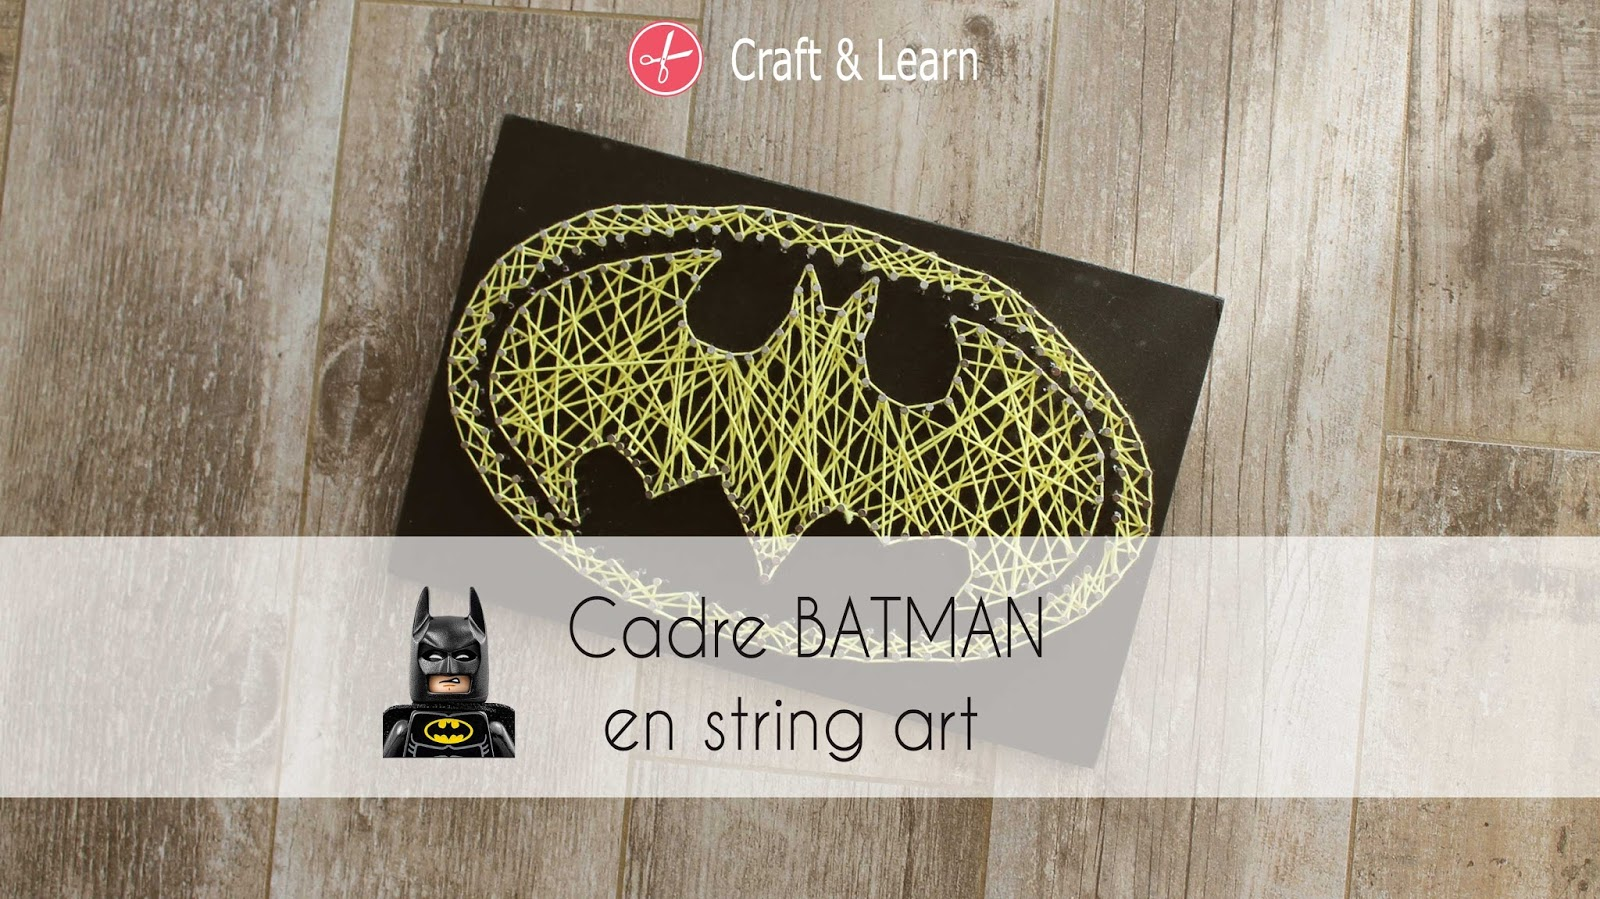 High Five Family illustration cadre Batman craft bricolage anglais